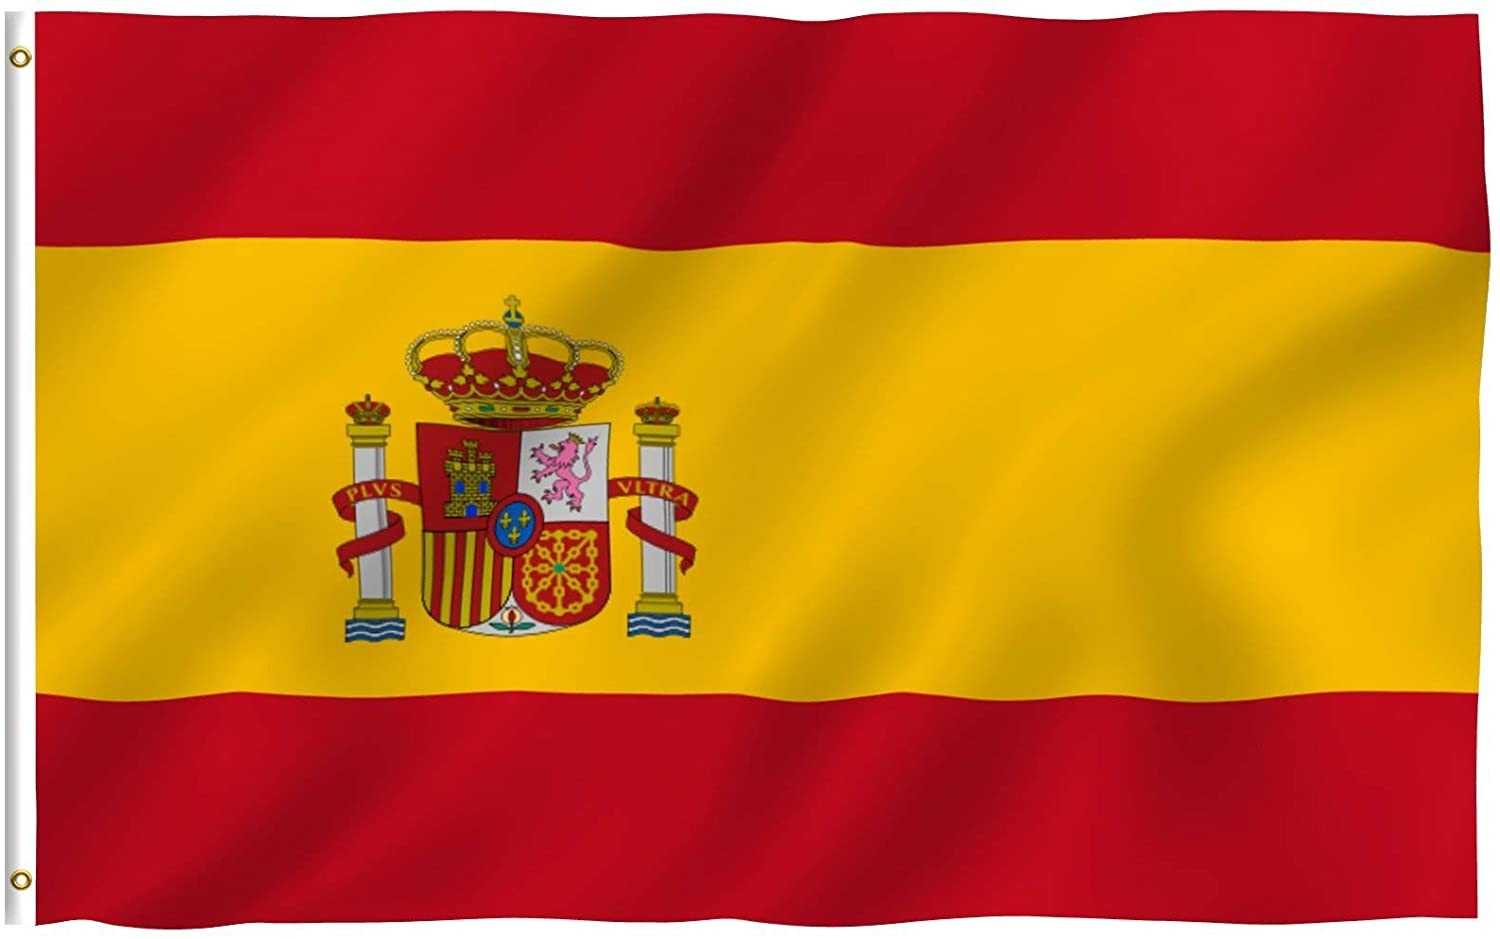 Amazon Com Anley Fly Breeze 3x5 Foot Spain Flag Vivid Color And Fade Proof Canvas Header And Double Stitched Spainish National Flags Polyester With Brass Grommets 3 X 5 Ft Garden Outdoor